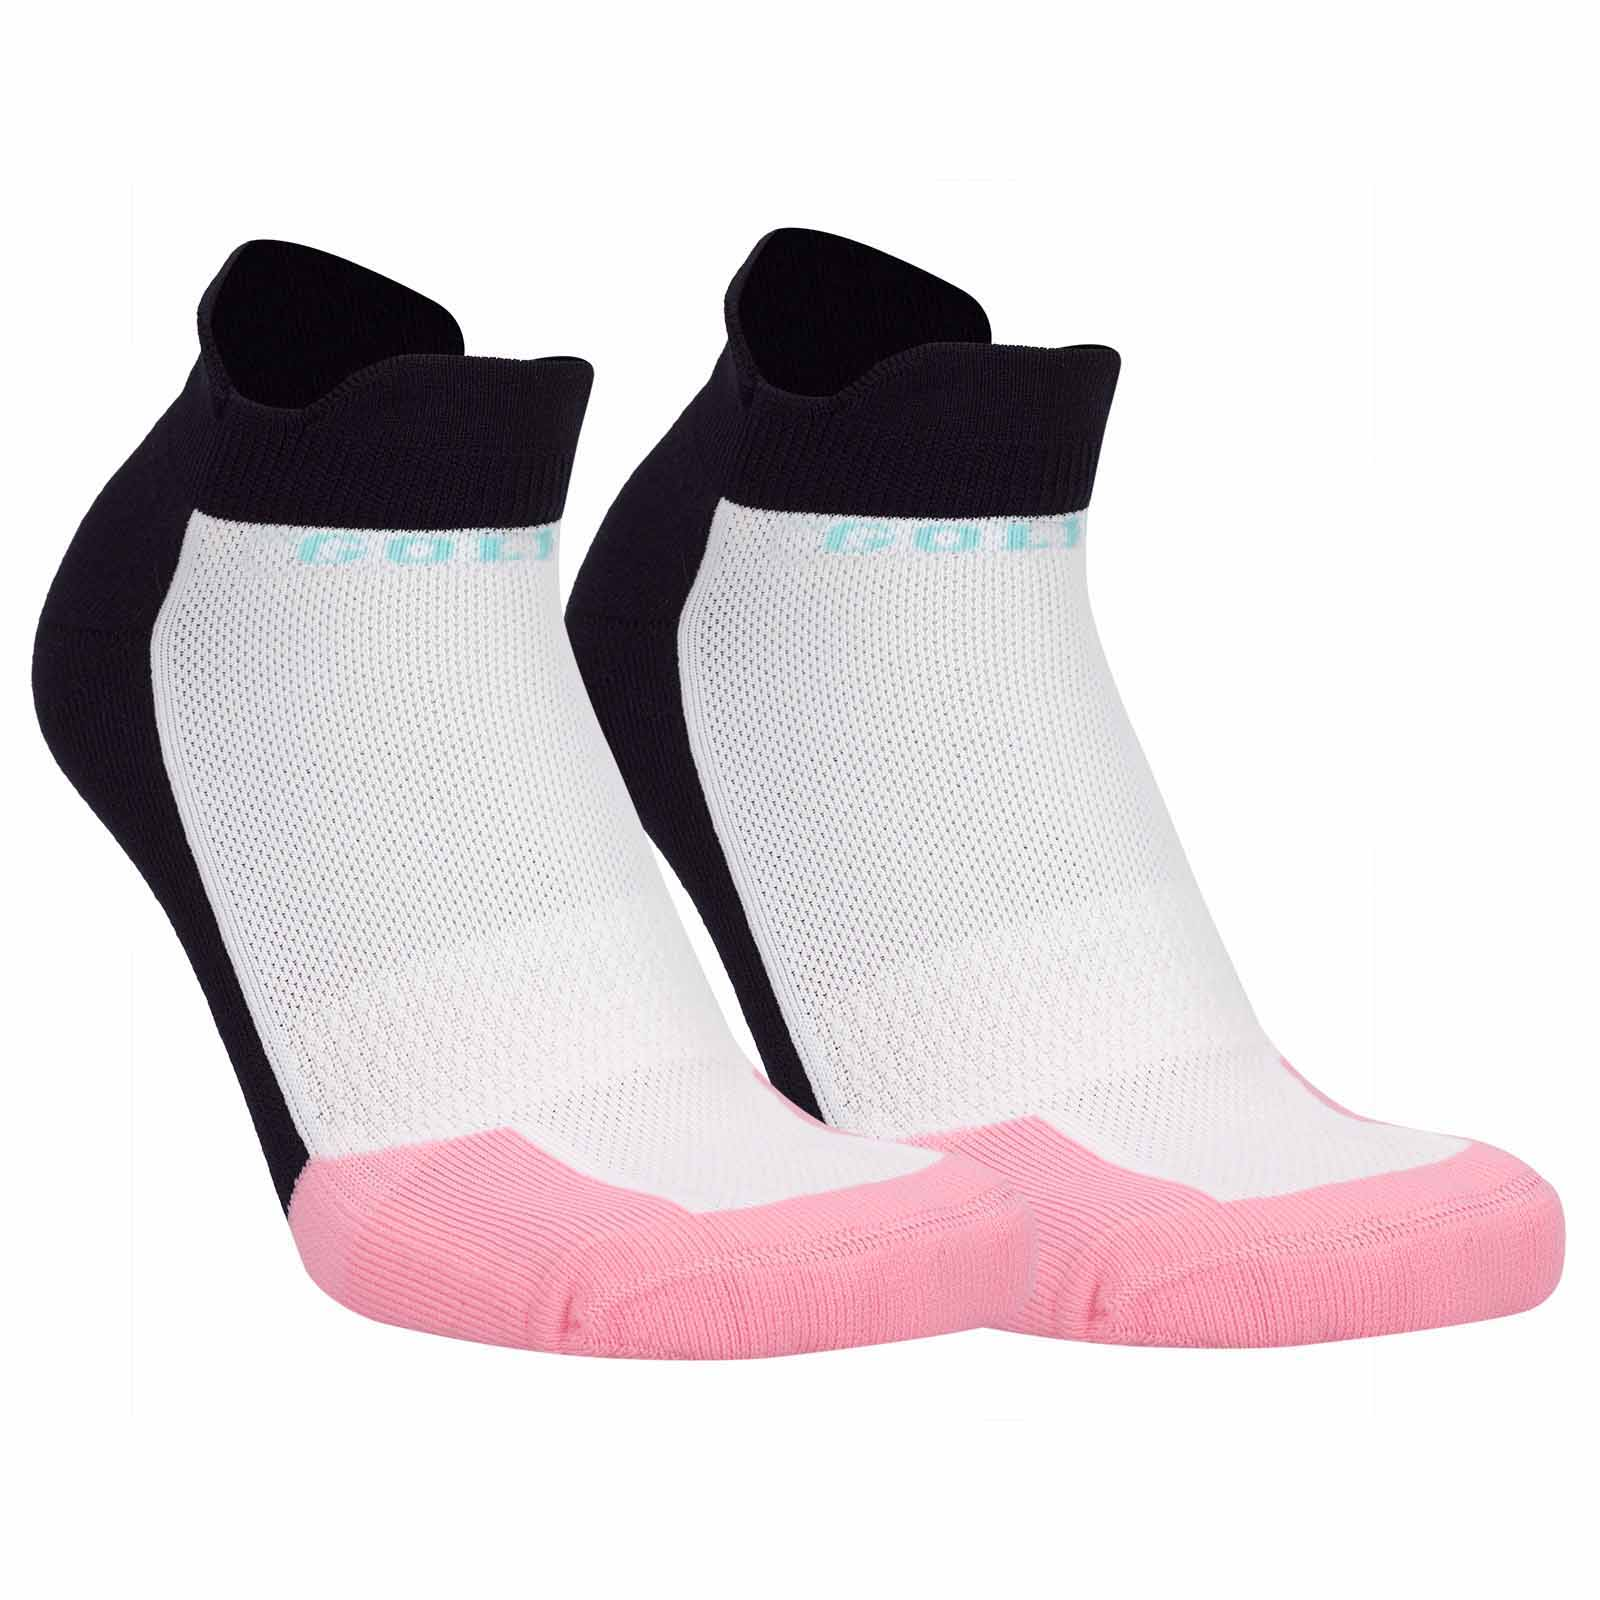 Ladies' Dry Comfort thermal golf socks with overlapping cuffs